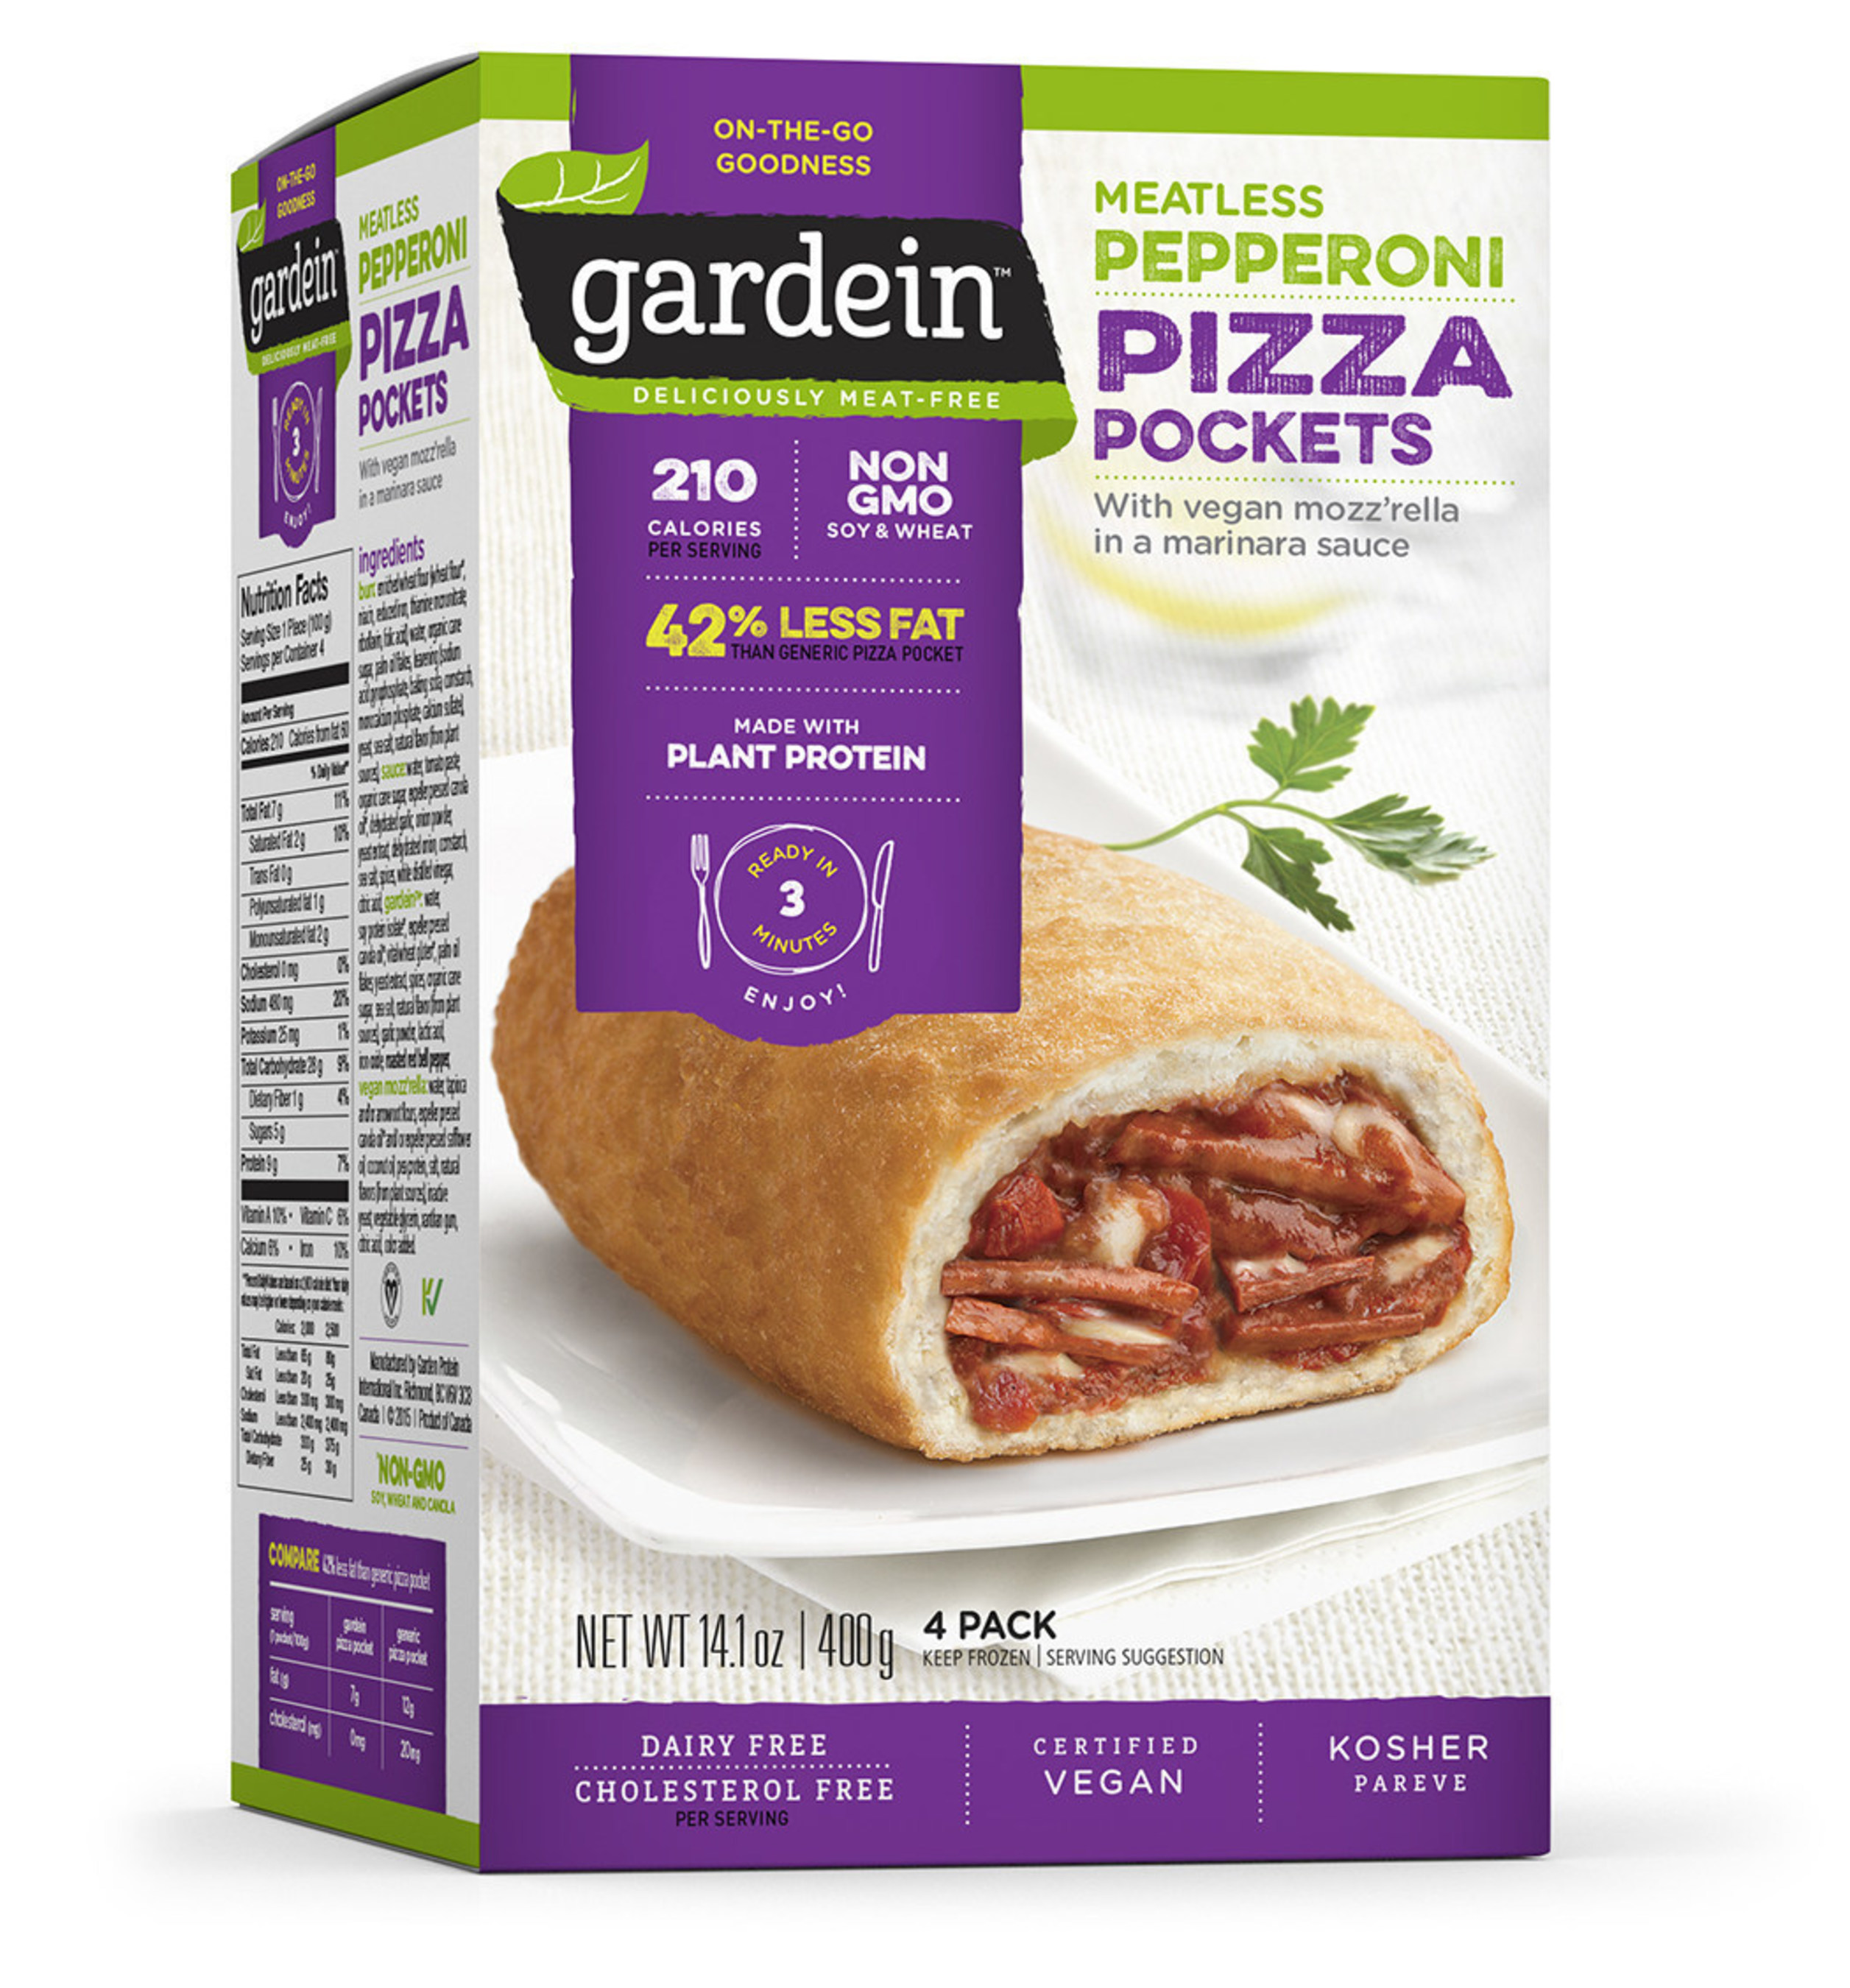 Gardein™ Launches New Meatless Pepperoni Pizza Pockets